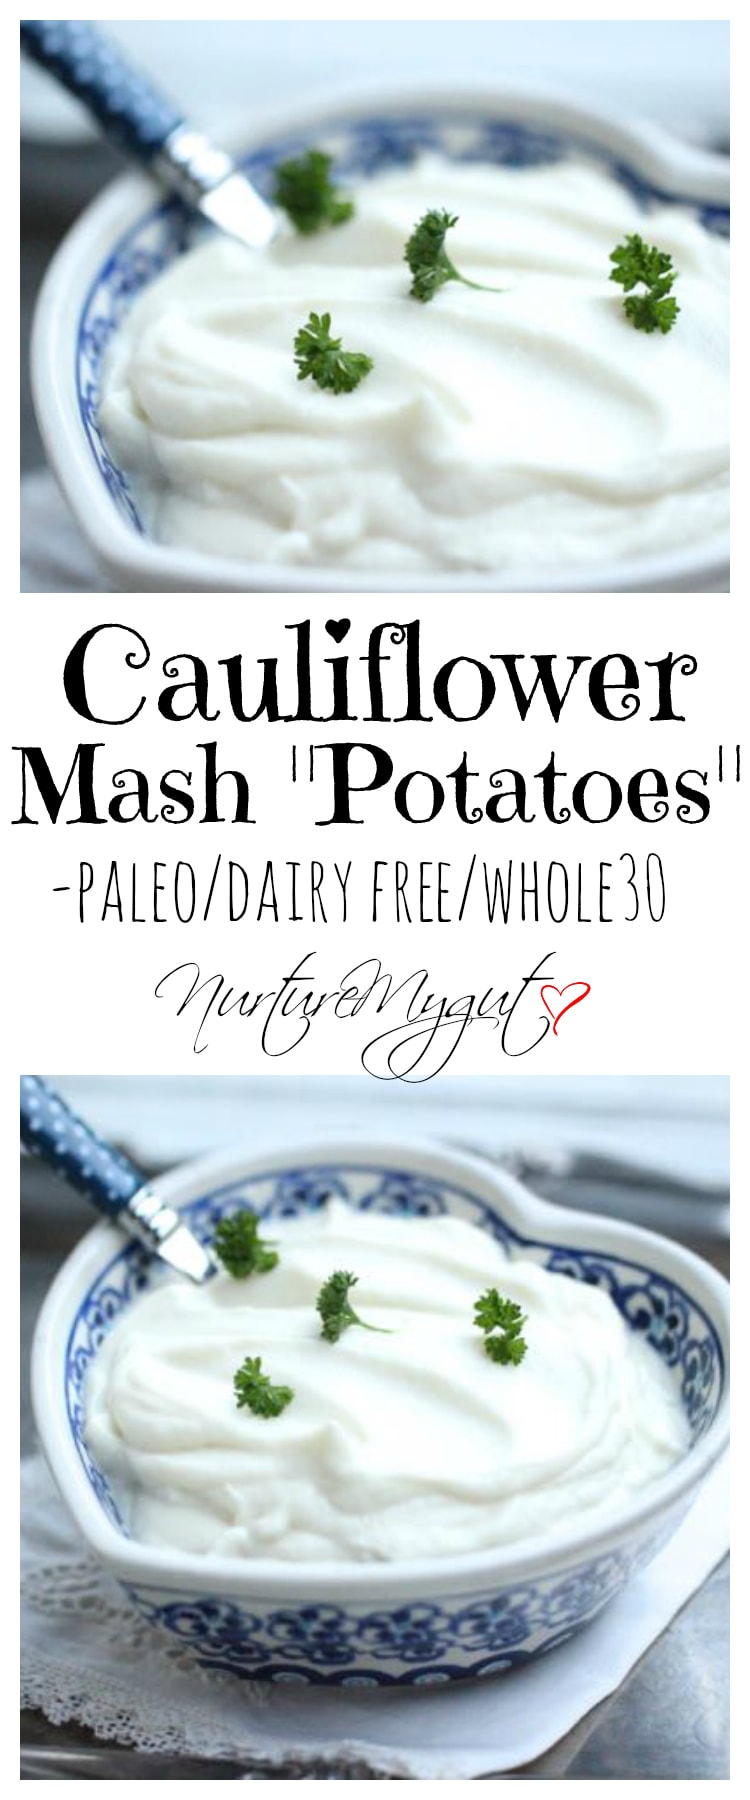 cauliflower mash potatoes